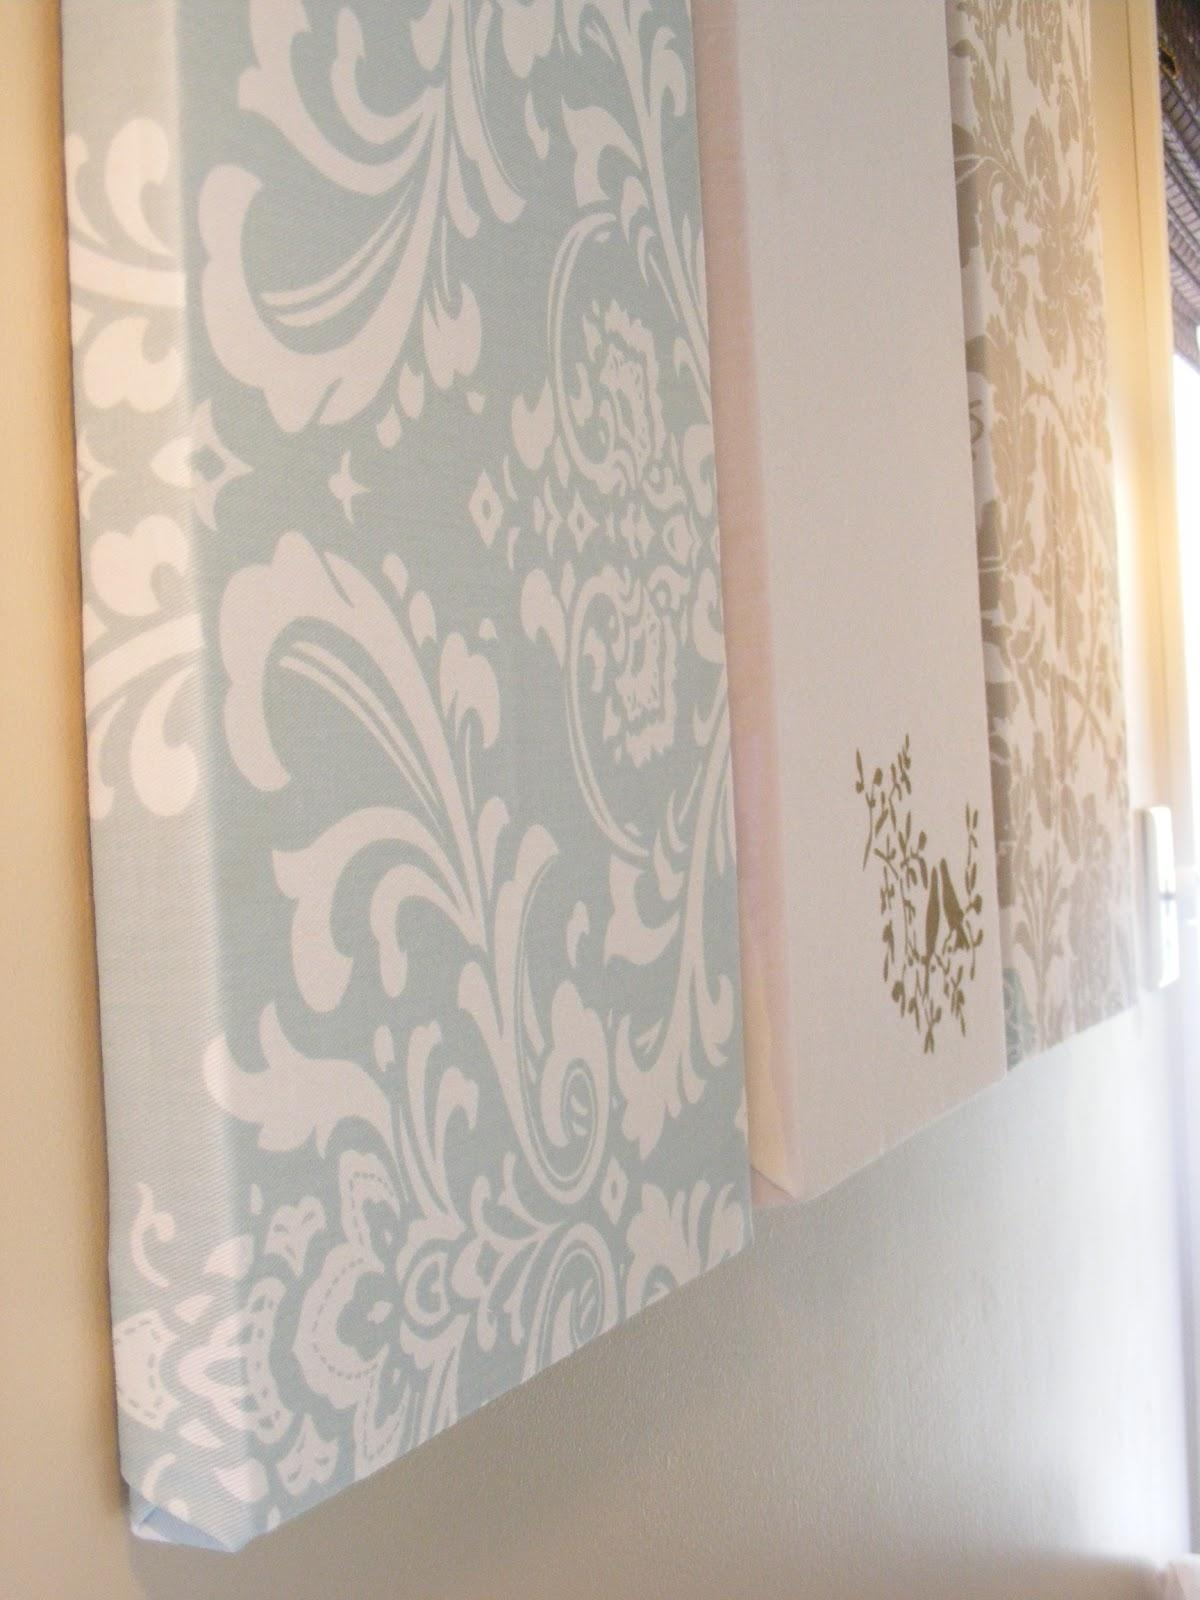 The Complete Guide To Imperfect Homemaking: Simple, Thrifty Diy Art Within Fabric Canvas Wall Art (Image 18 of 20)